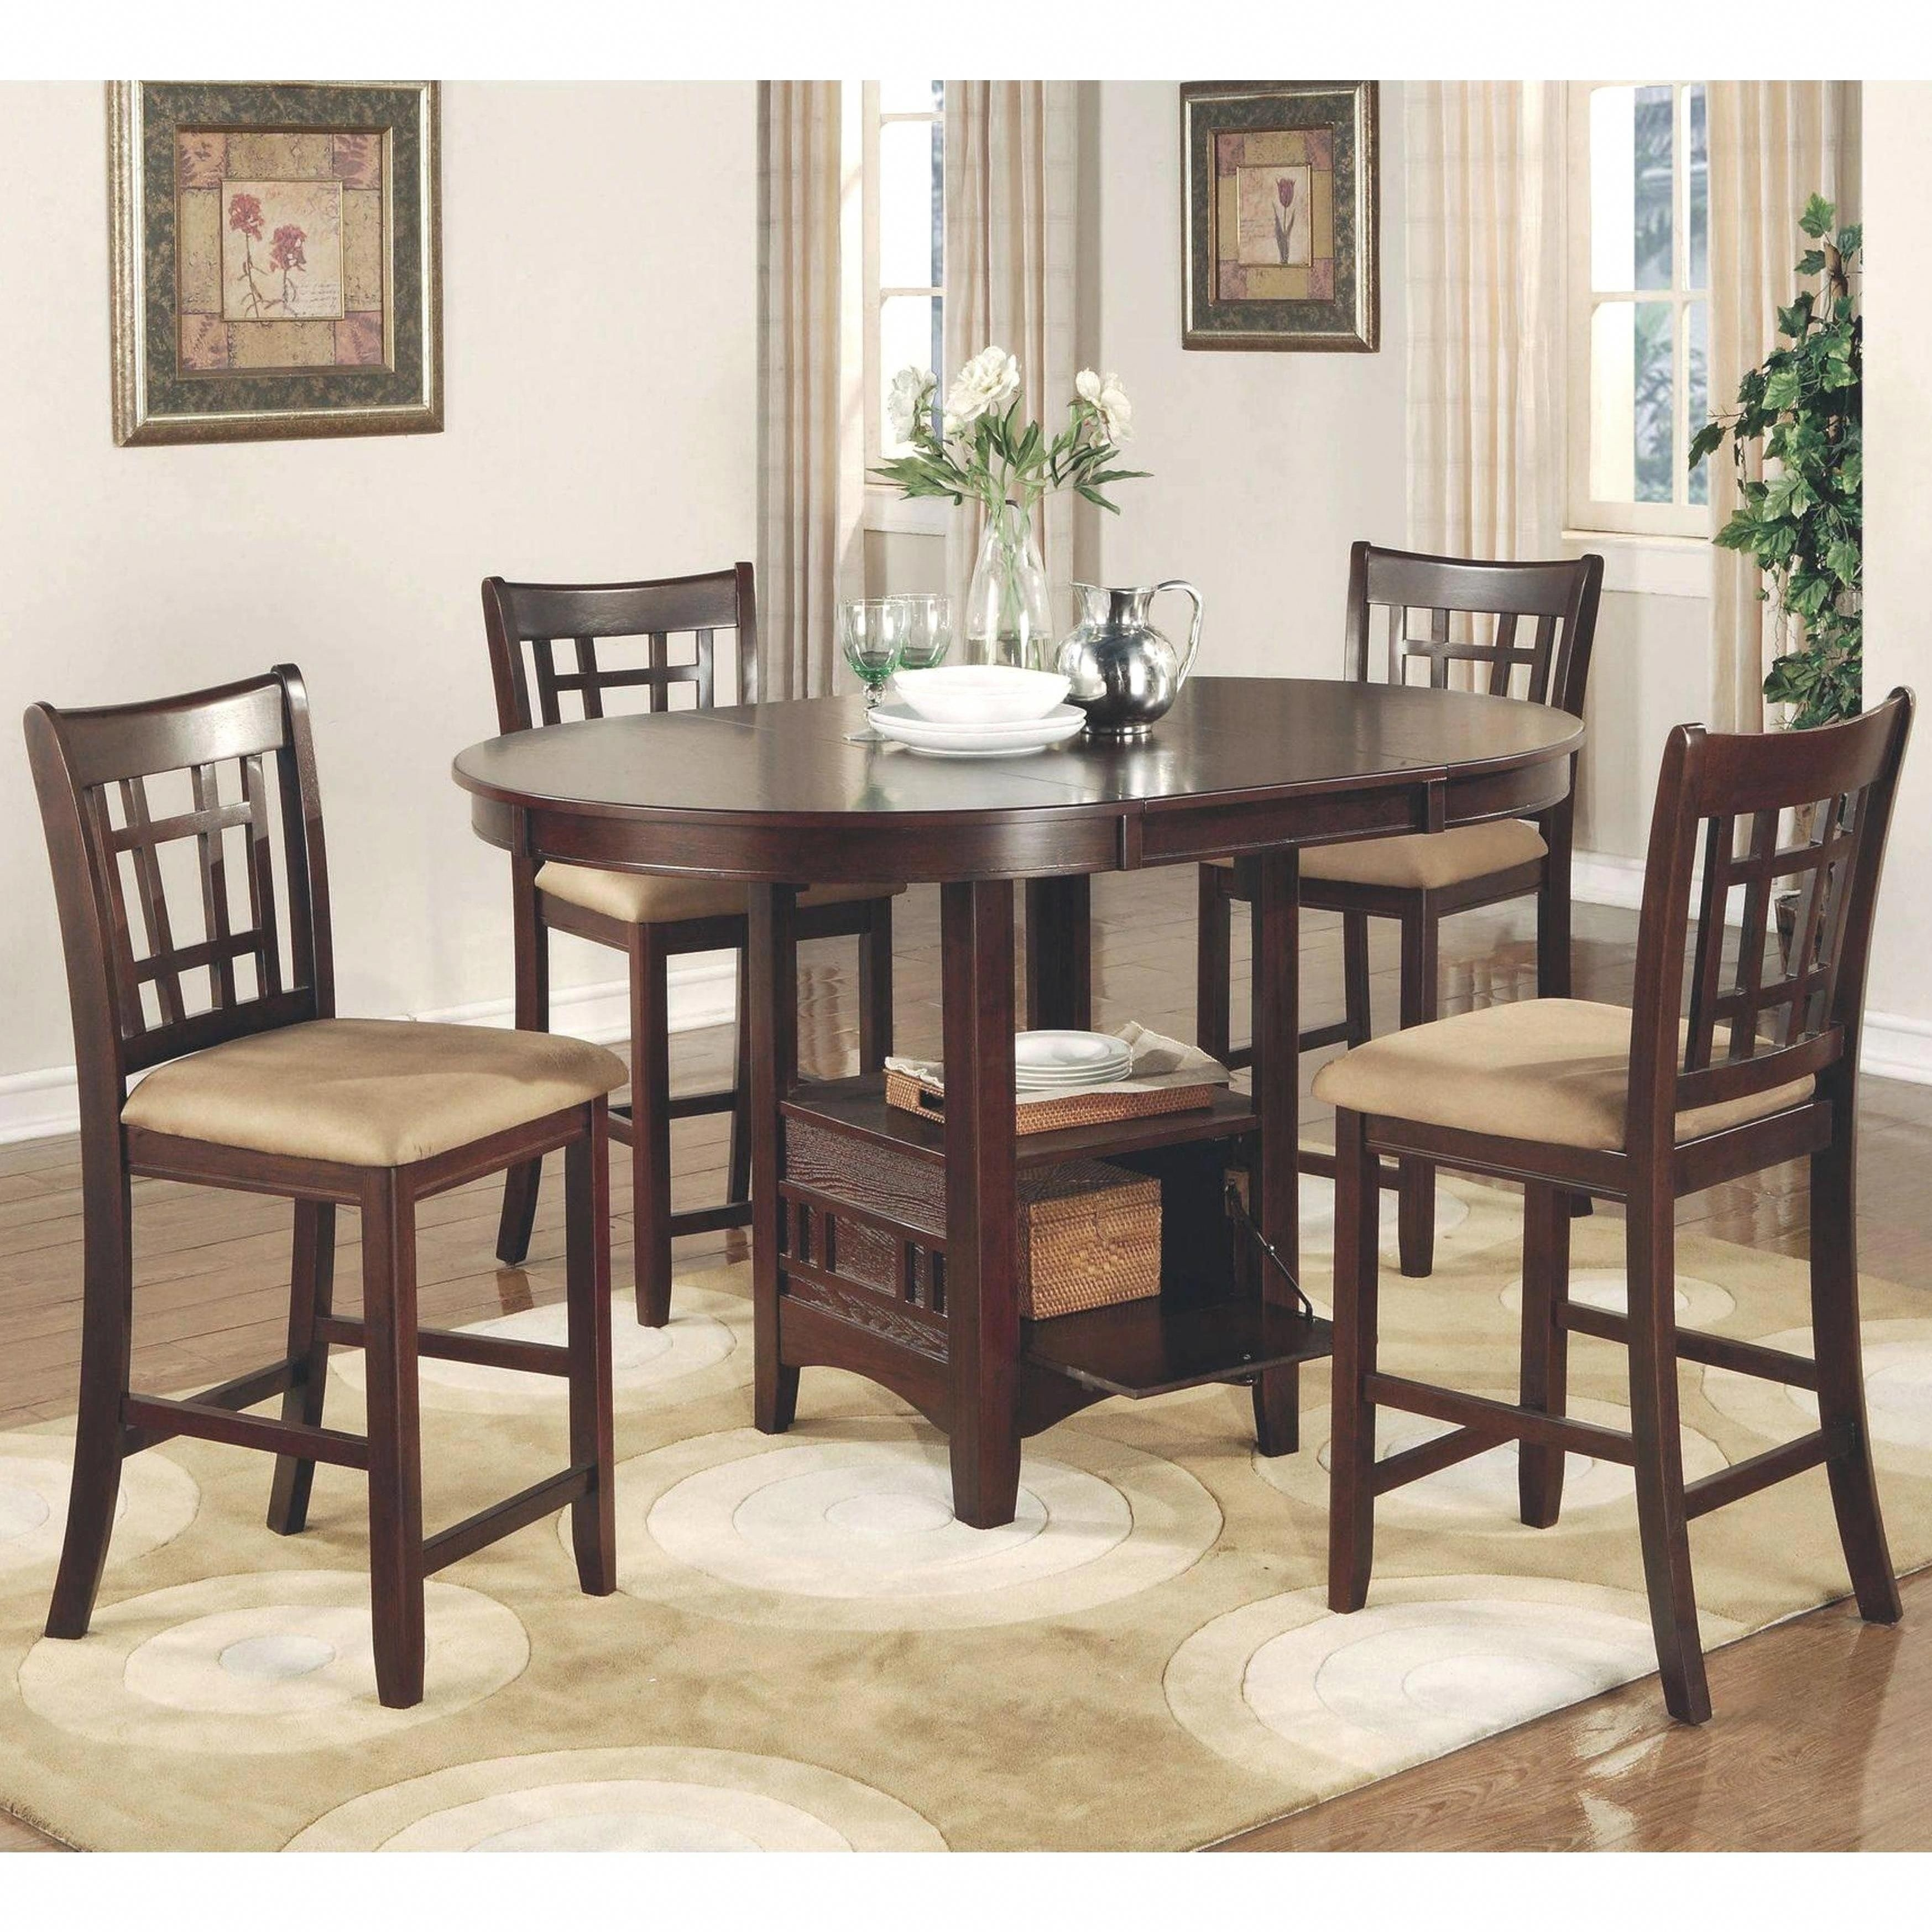 Azalea Warm Brown Counter Height Dining Set (1 Table – 6 Stools Throughout Most Recently Released Market 7 Piece Dining Sets With Side Chairs (View 4 of 20)